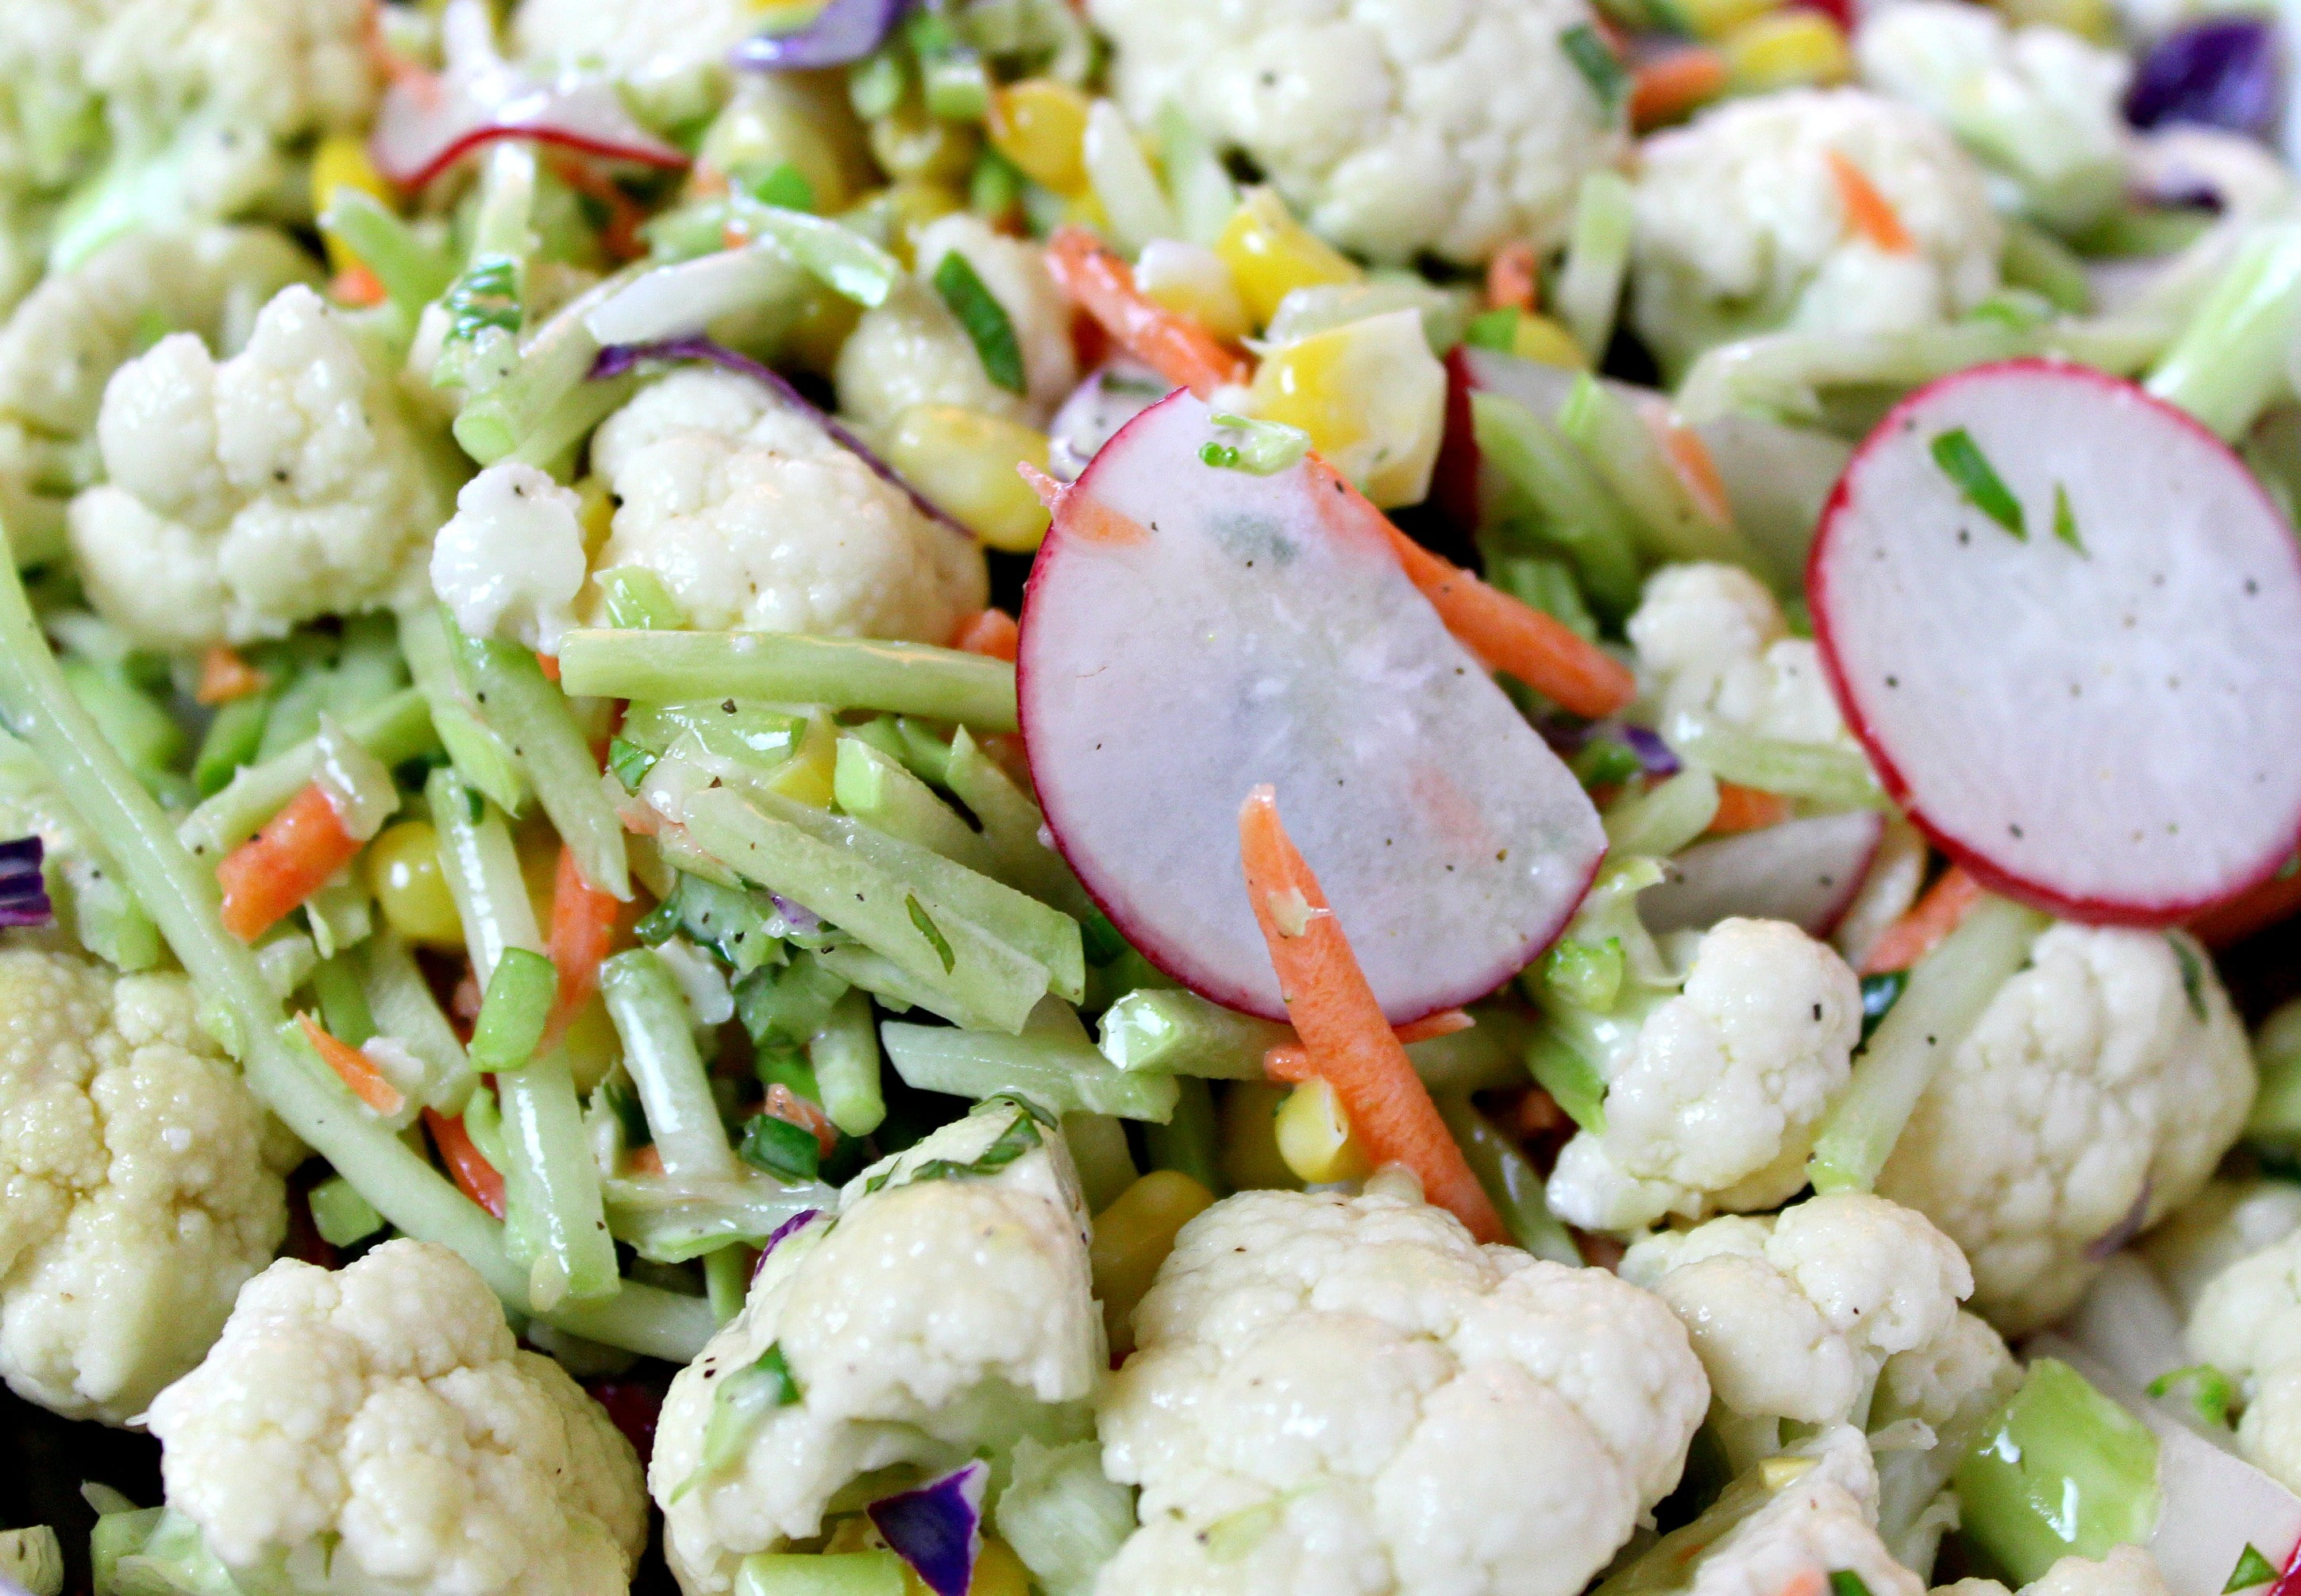 Pour homemade dressing salad ingredients and mix well.